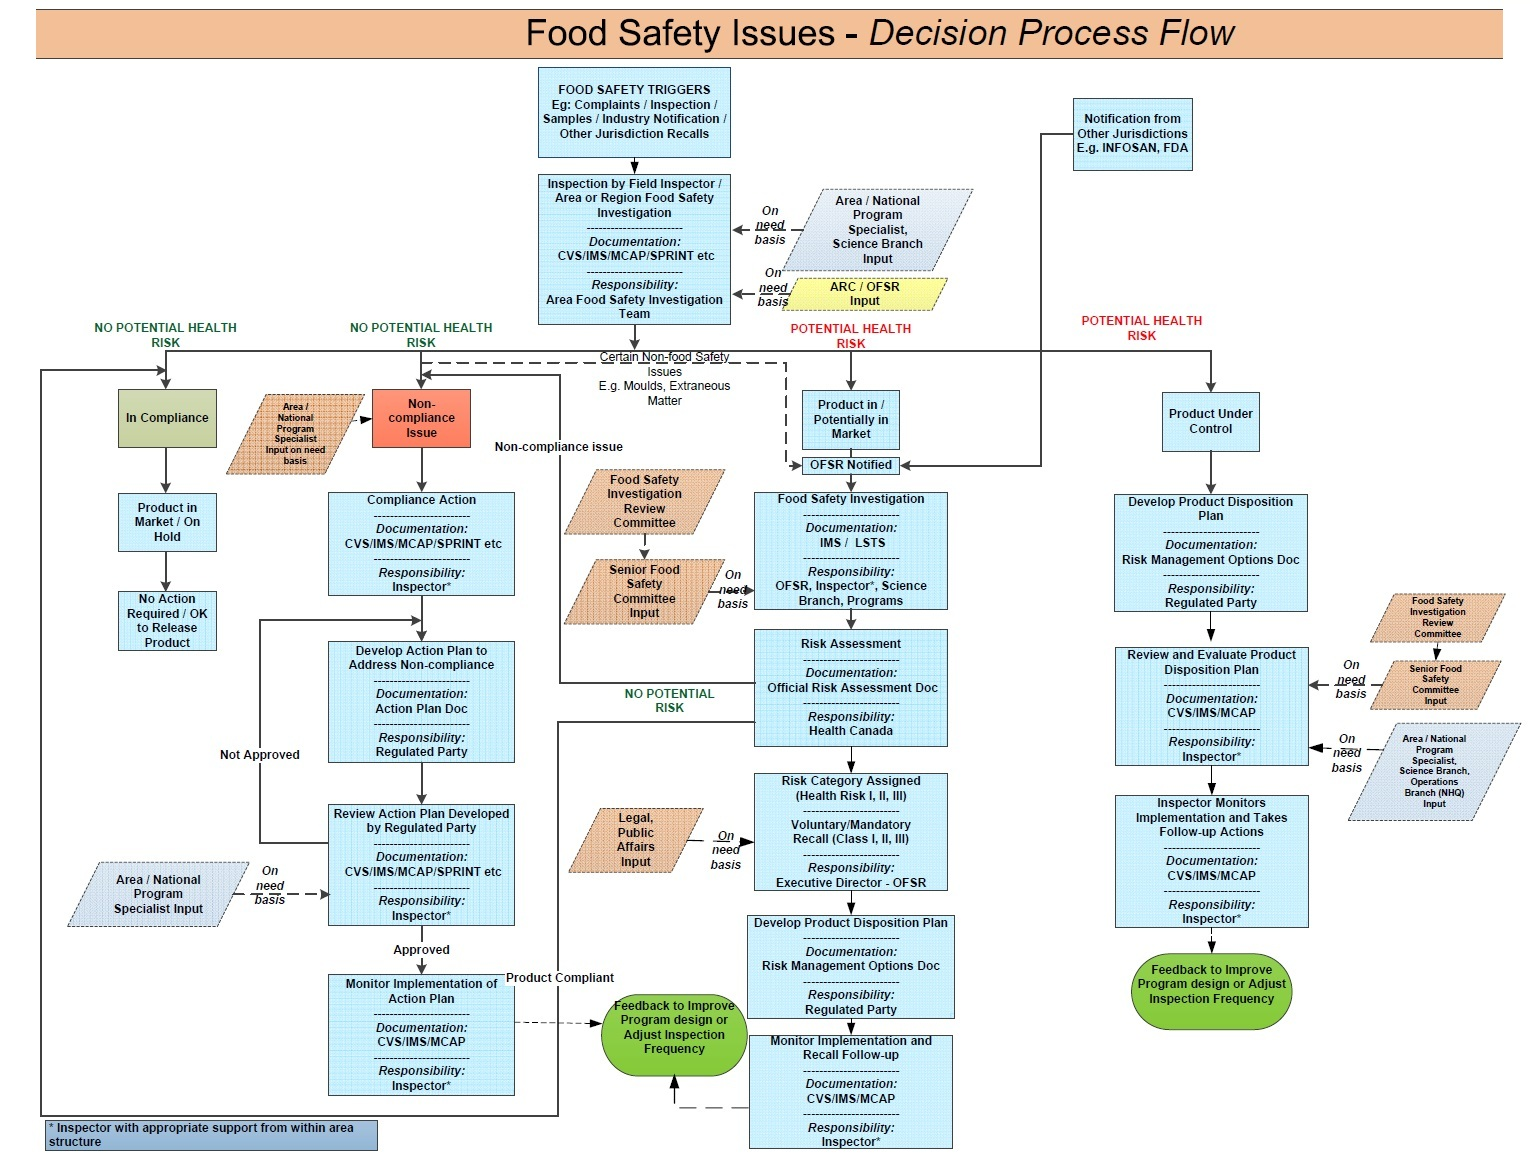 CFIA Framework for Food Safety Investigation and Response  Food